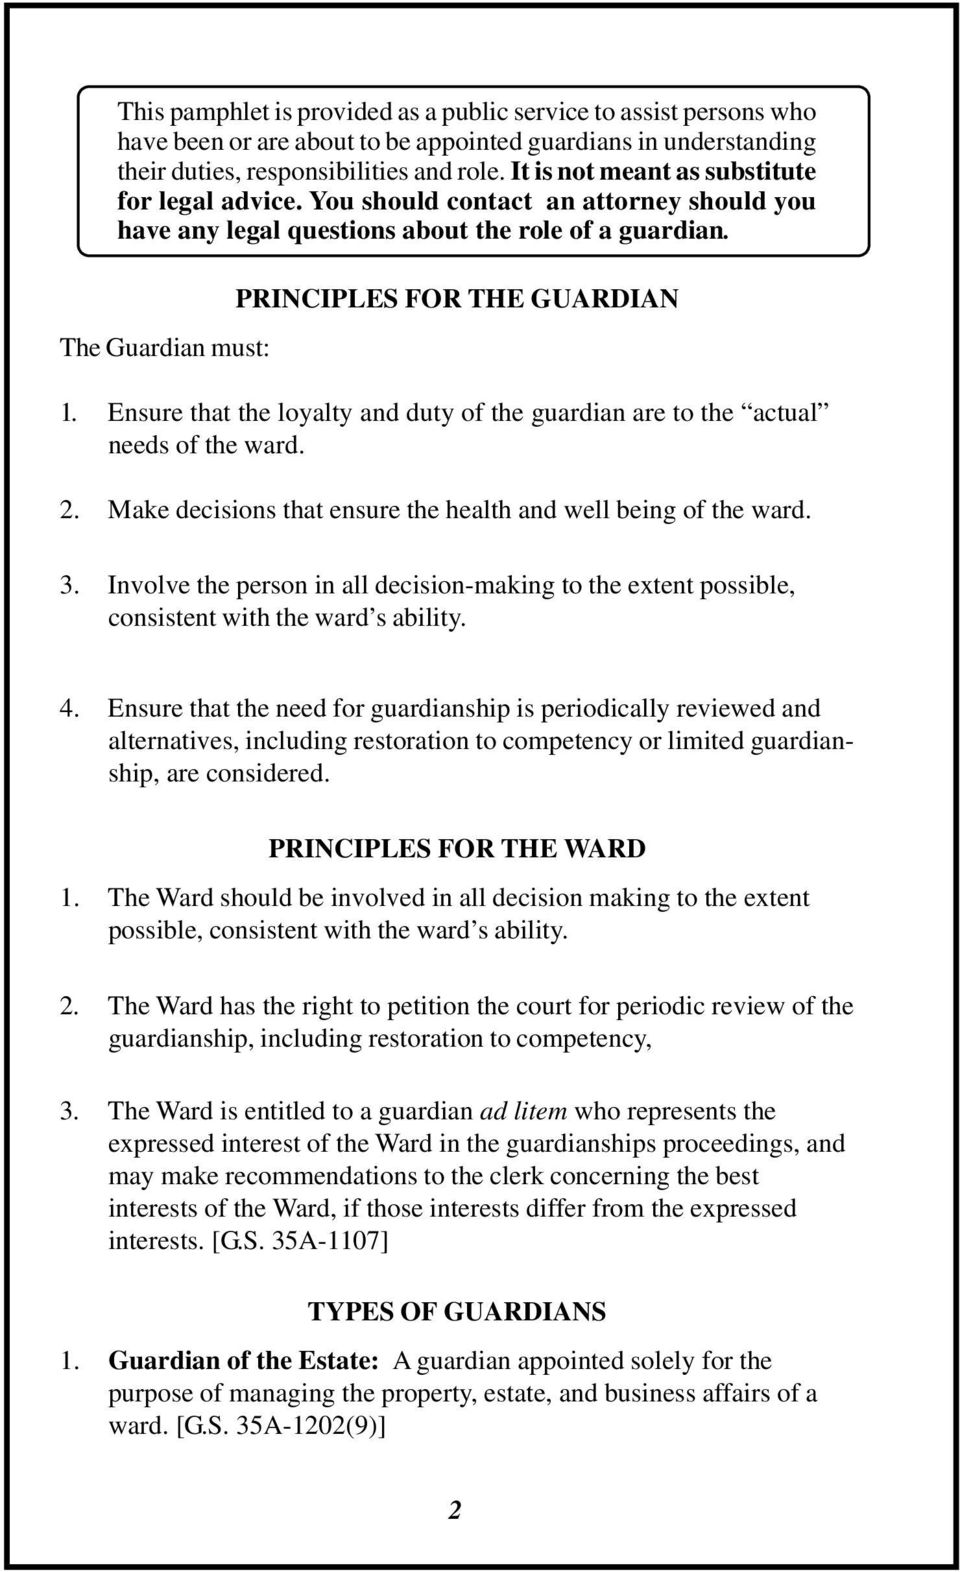 Ensure that the loyalty and duty of the guardian are to the actual needs of the ward. 2. Make decisions that ensure the health and well being of the ward. 3.